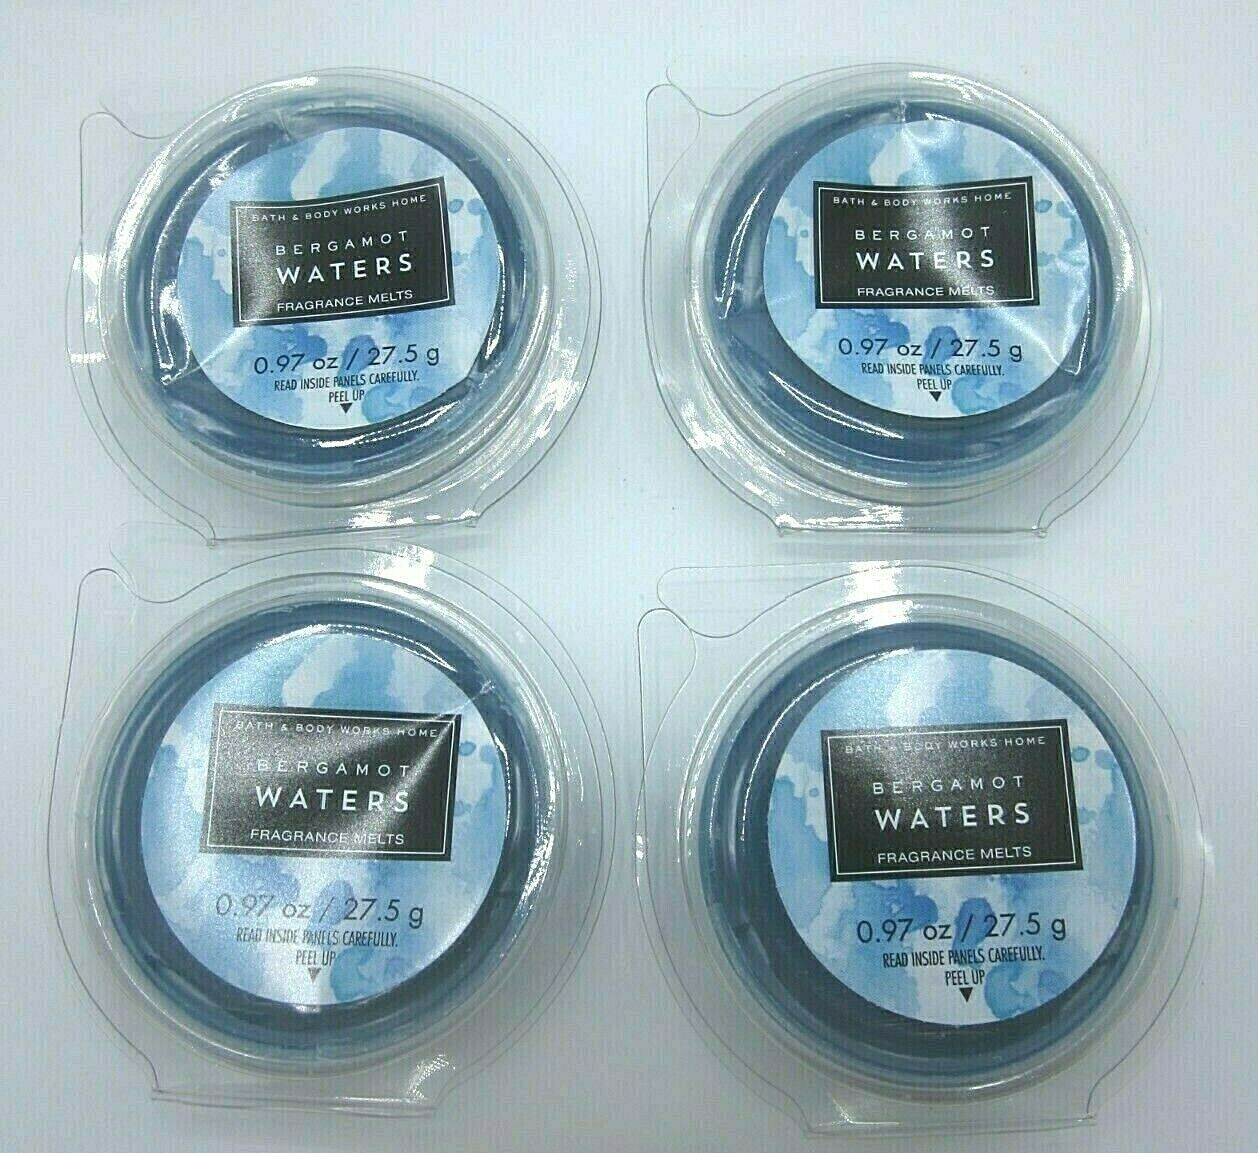 4 packages Bath & Body Works Home Fragrance Wax Melts Bergamot Waters